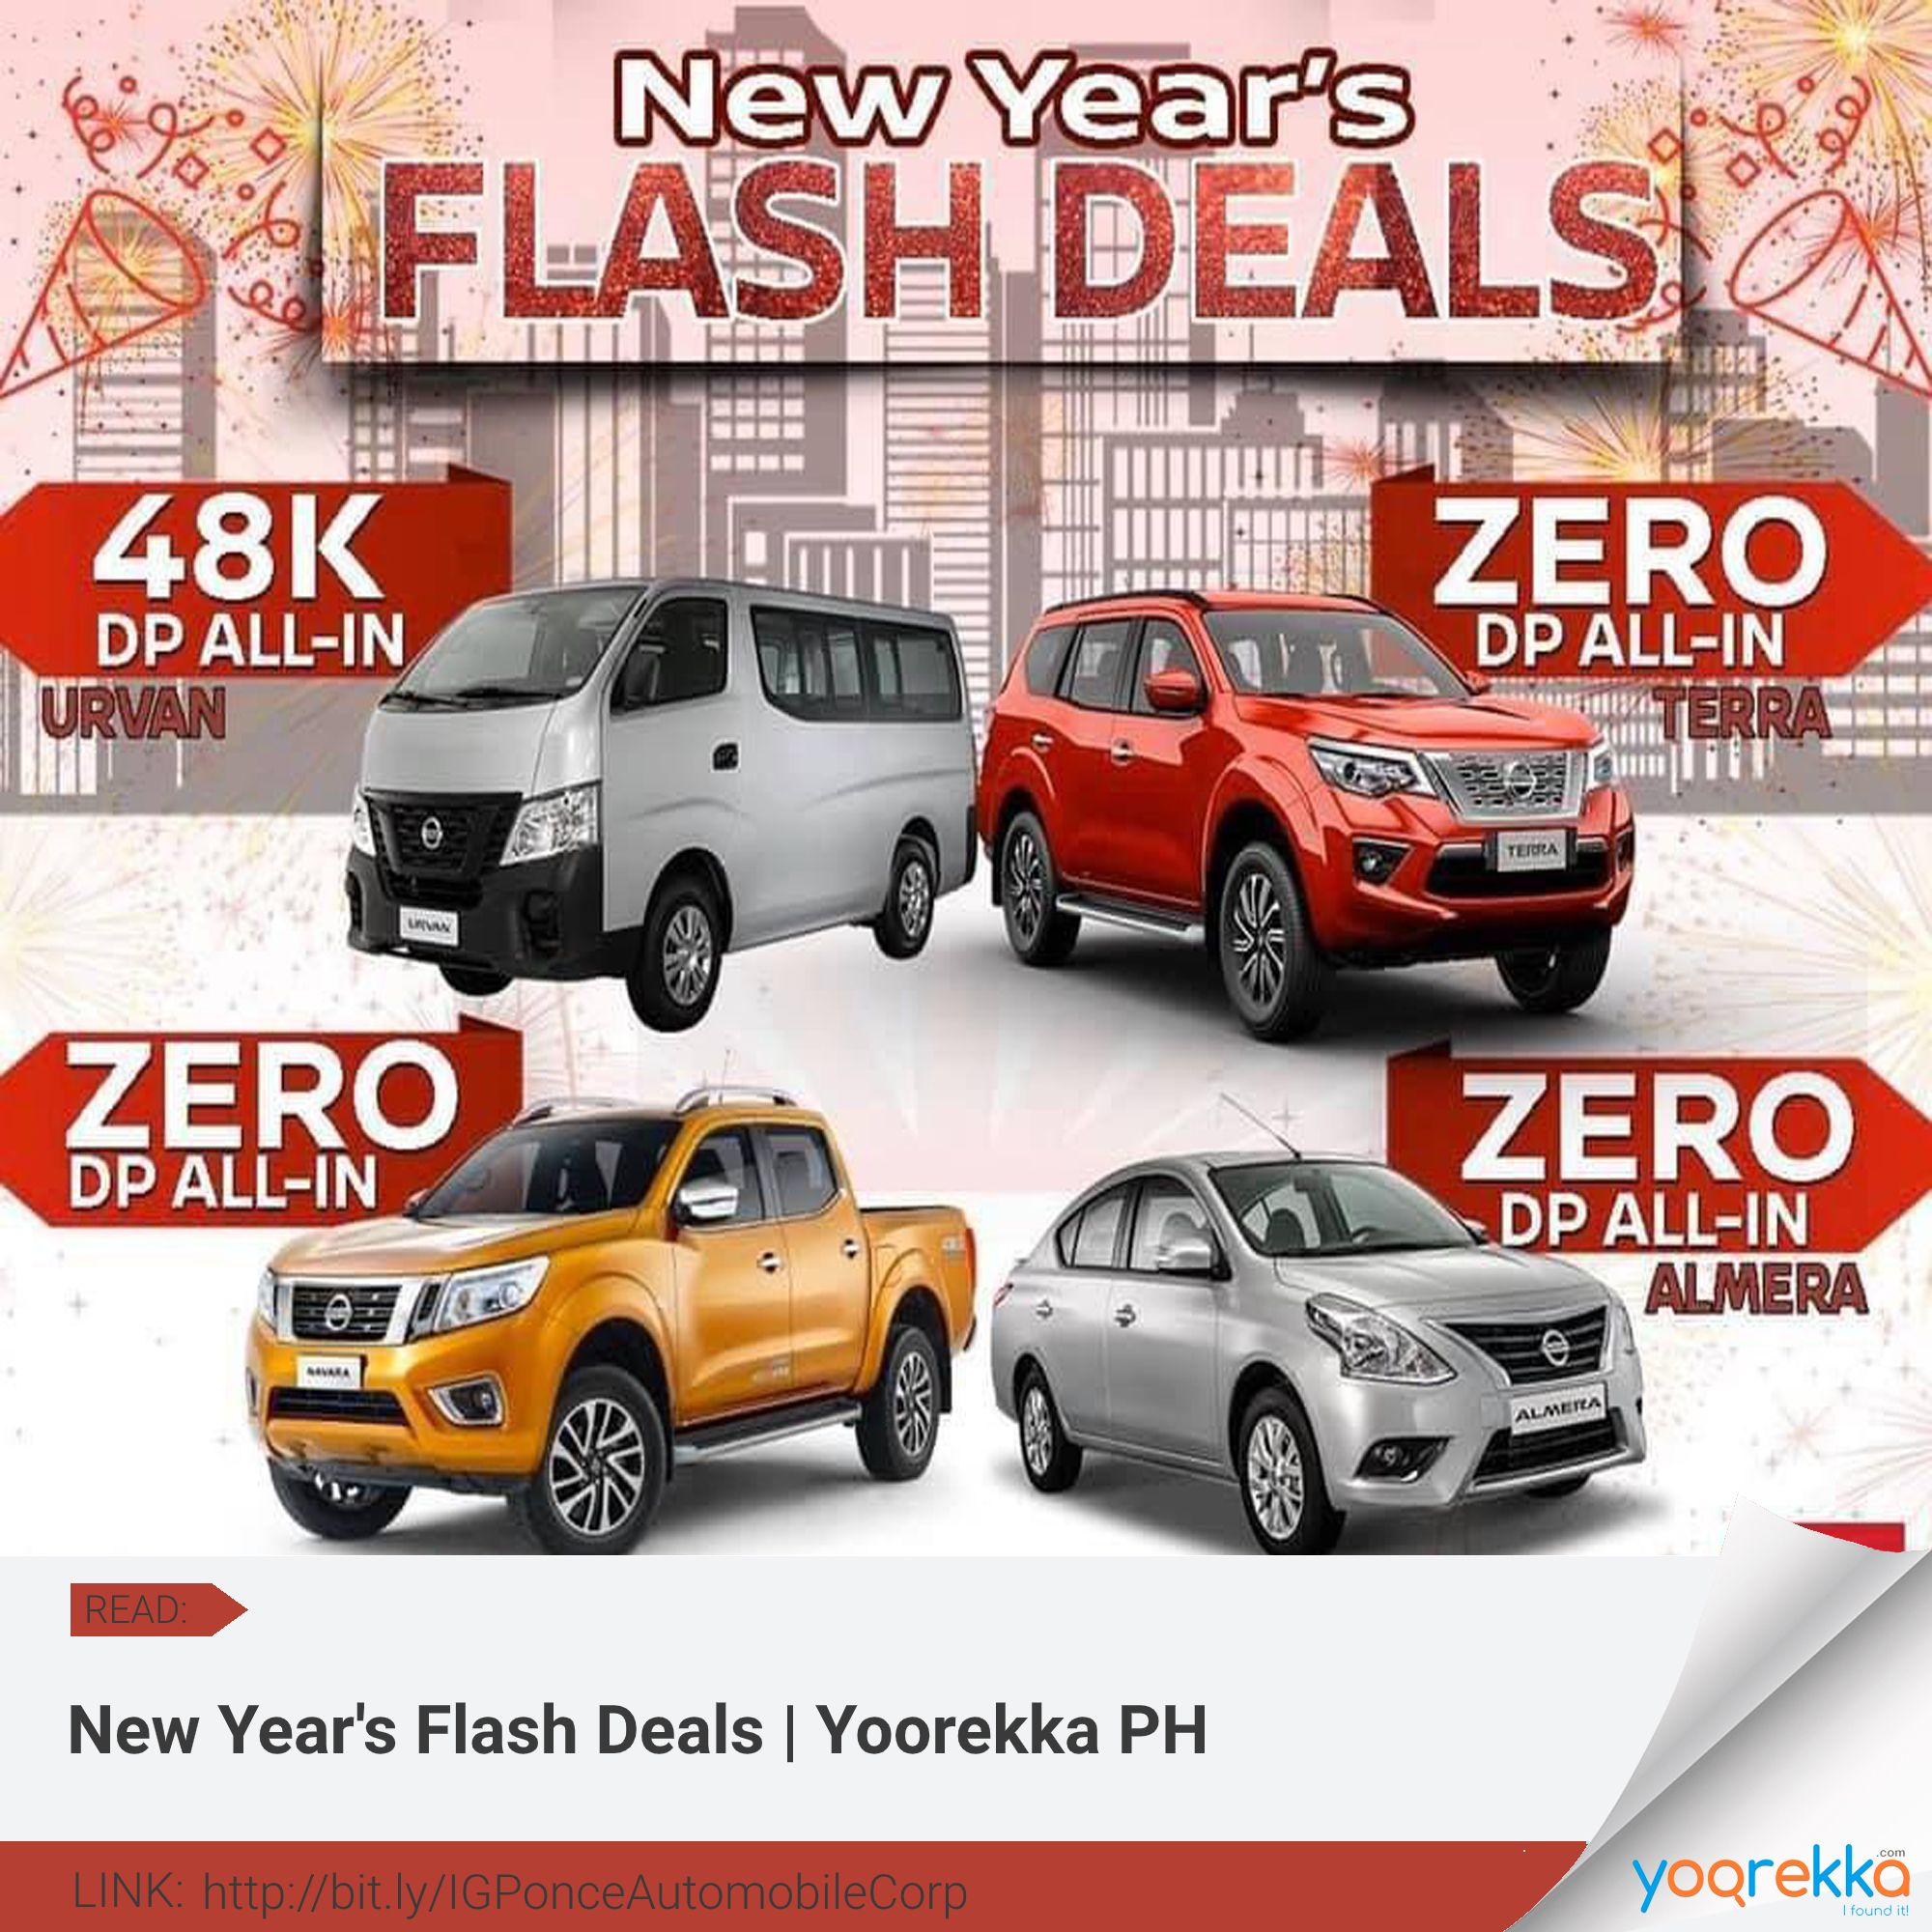 Nissan Bacolod New Year S Flash Deals No Hidden Charges Promo Runs Until January 31 2020 Yoorekka Ponceautomobilecorporation In 2020 Flash Deals Deal Newyear